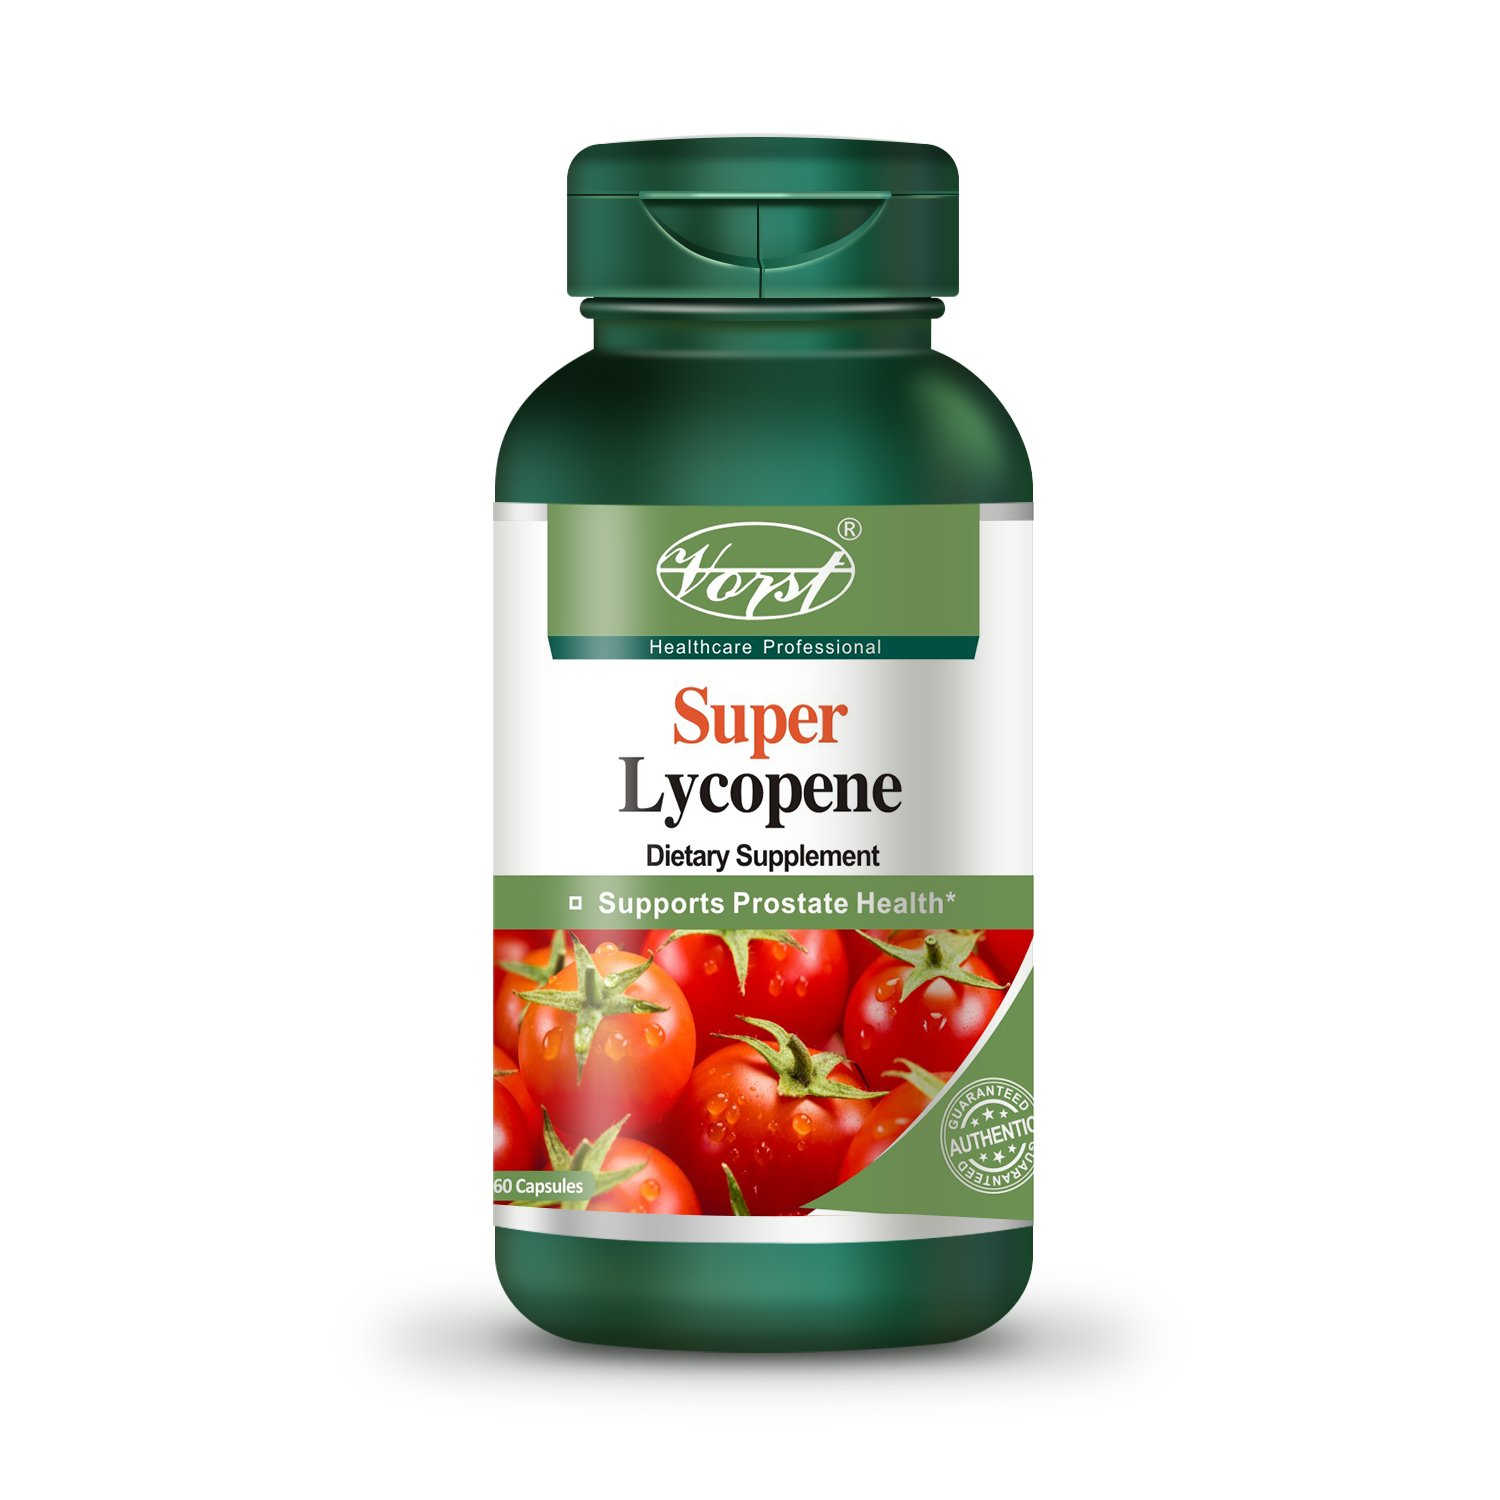 Vorst Lycopene with Zinc and Selenium 30mg 60 Capsules Carotenoids Supplement for Prostate and Heart Health Support Powerful Antioxidant Immune System Cardiovascular Licopeno